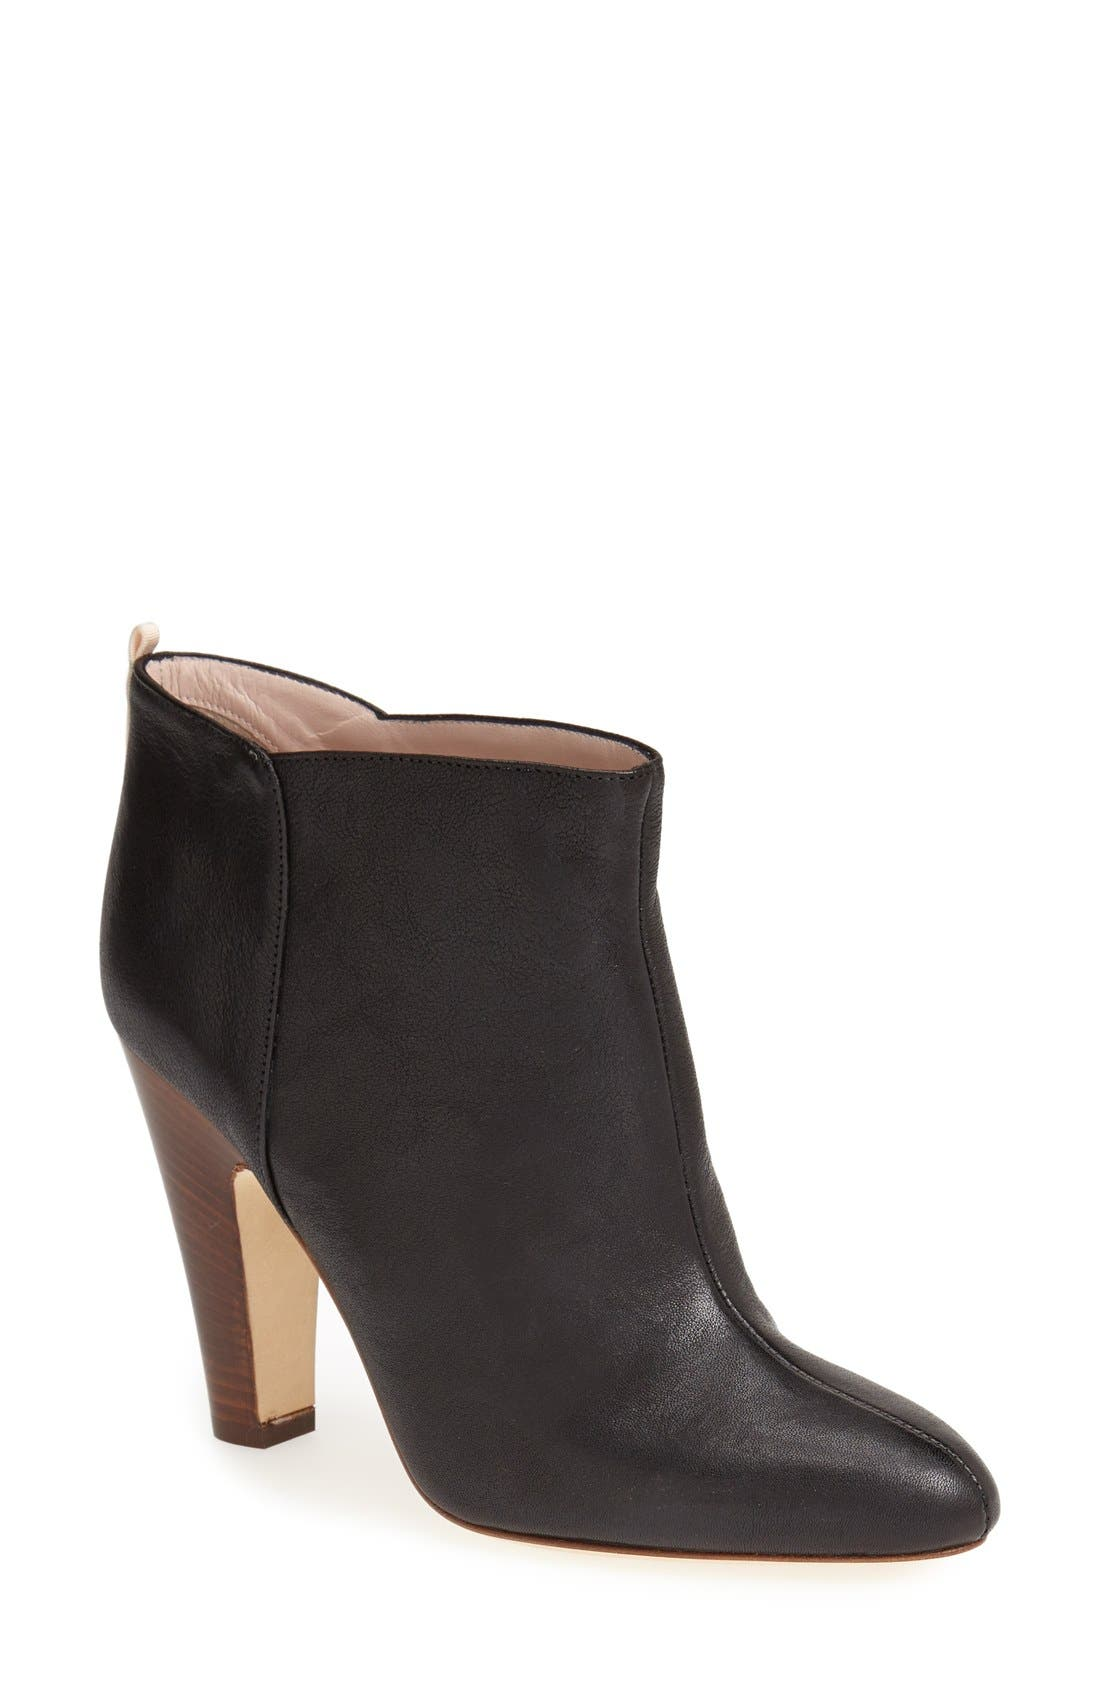 Main Image - SJP 'Serge' Leather Bootie (Women)